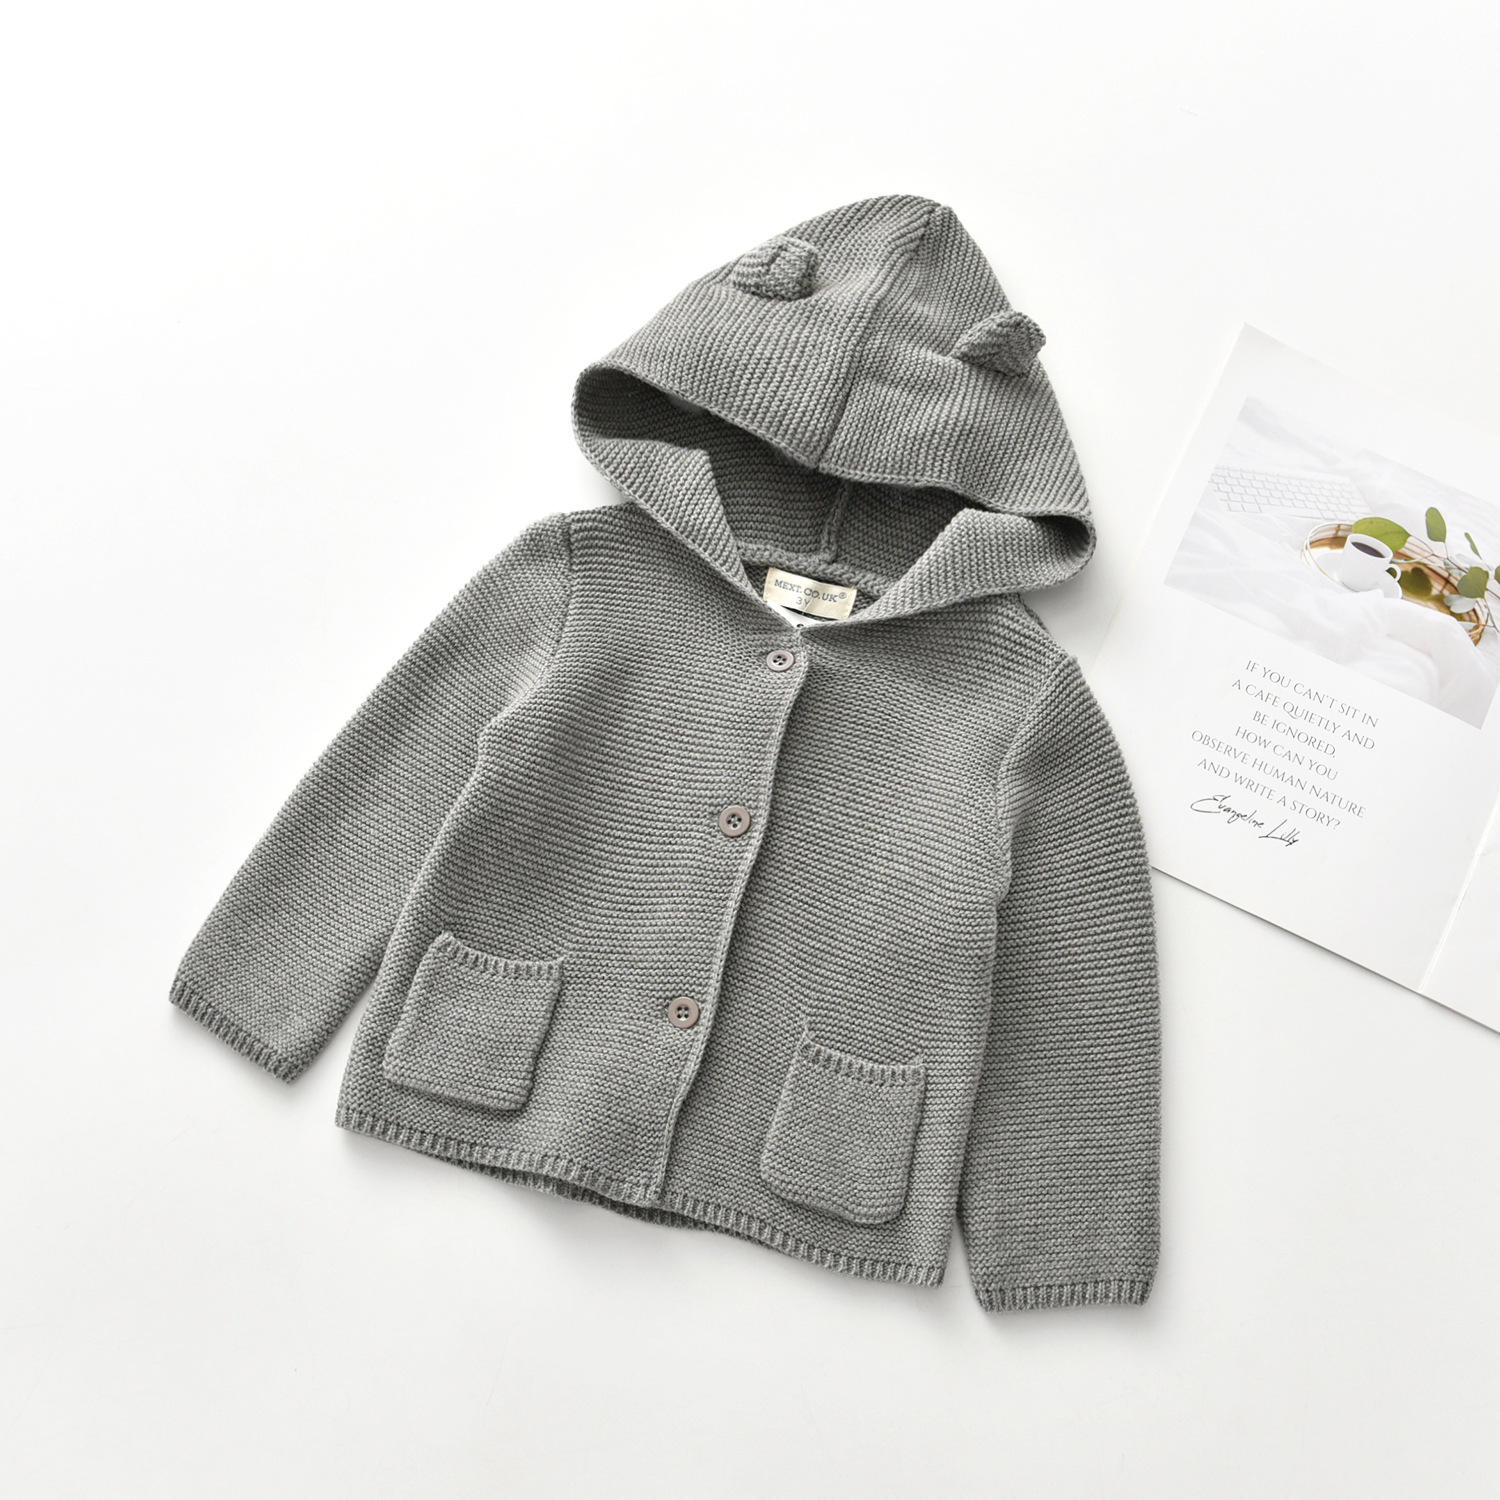 Fashion hooded designs winter knit sweater baby cardigan